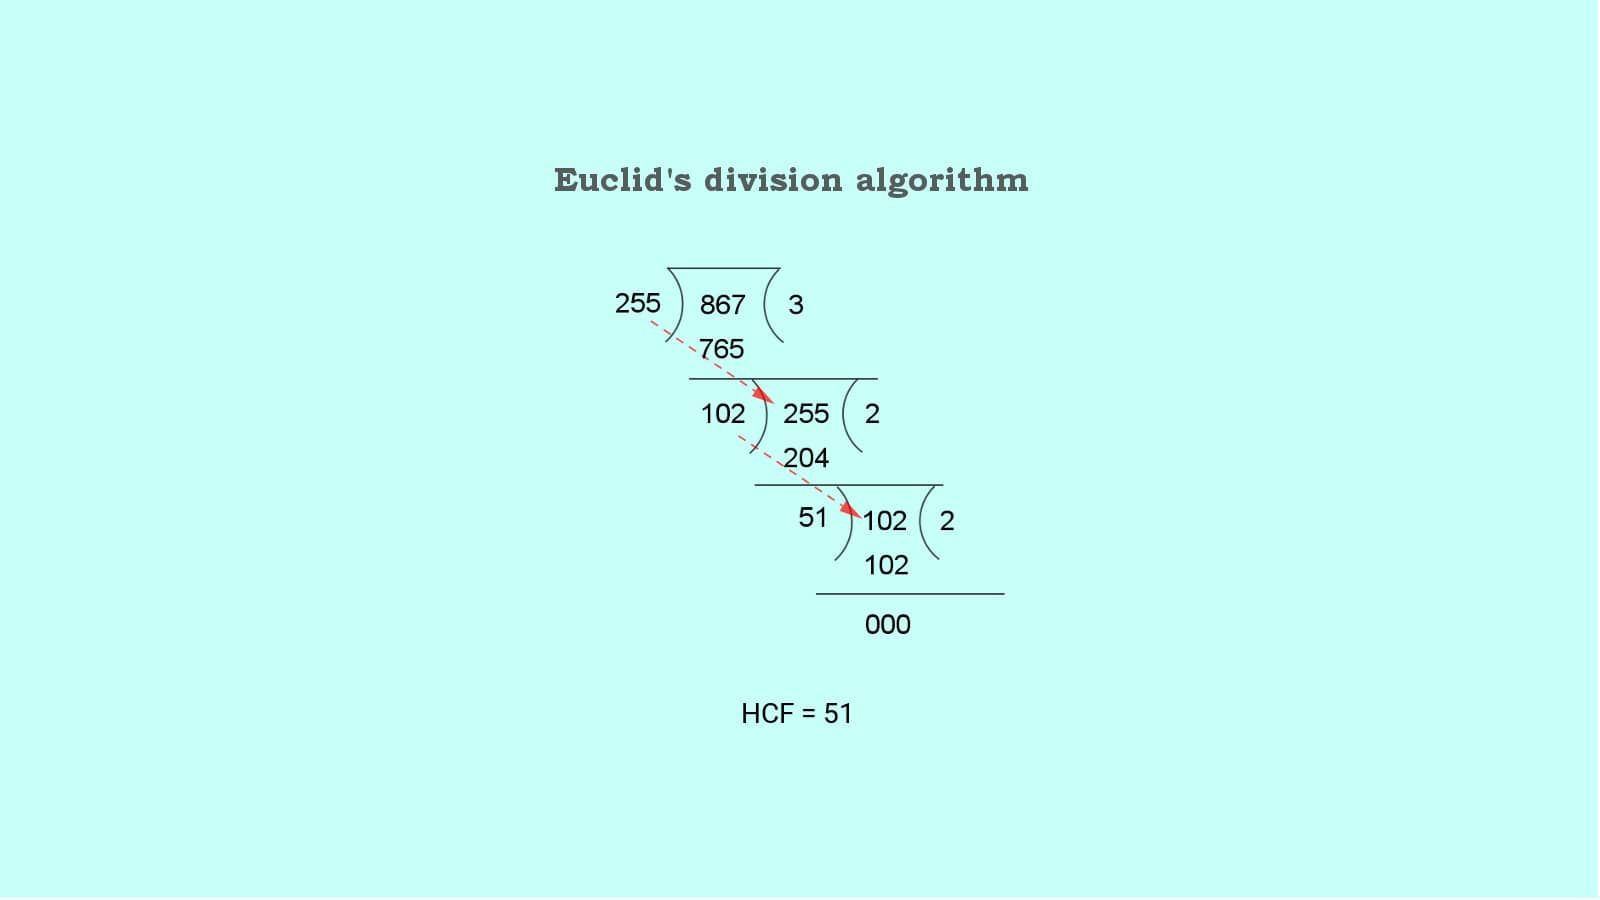 Pin By Suresolv On School Maths Division Algorithm Math Real Numbers [ 900 x 1600 Pixel ]